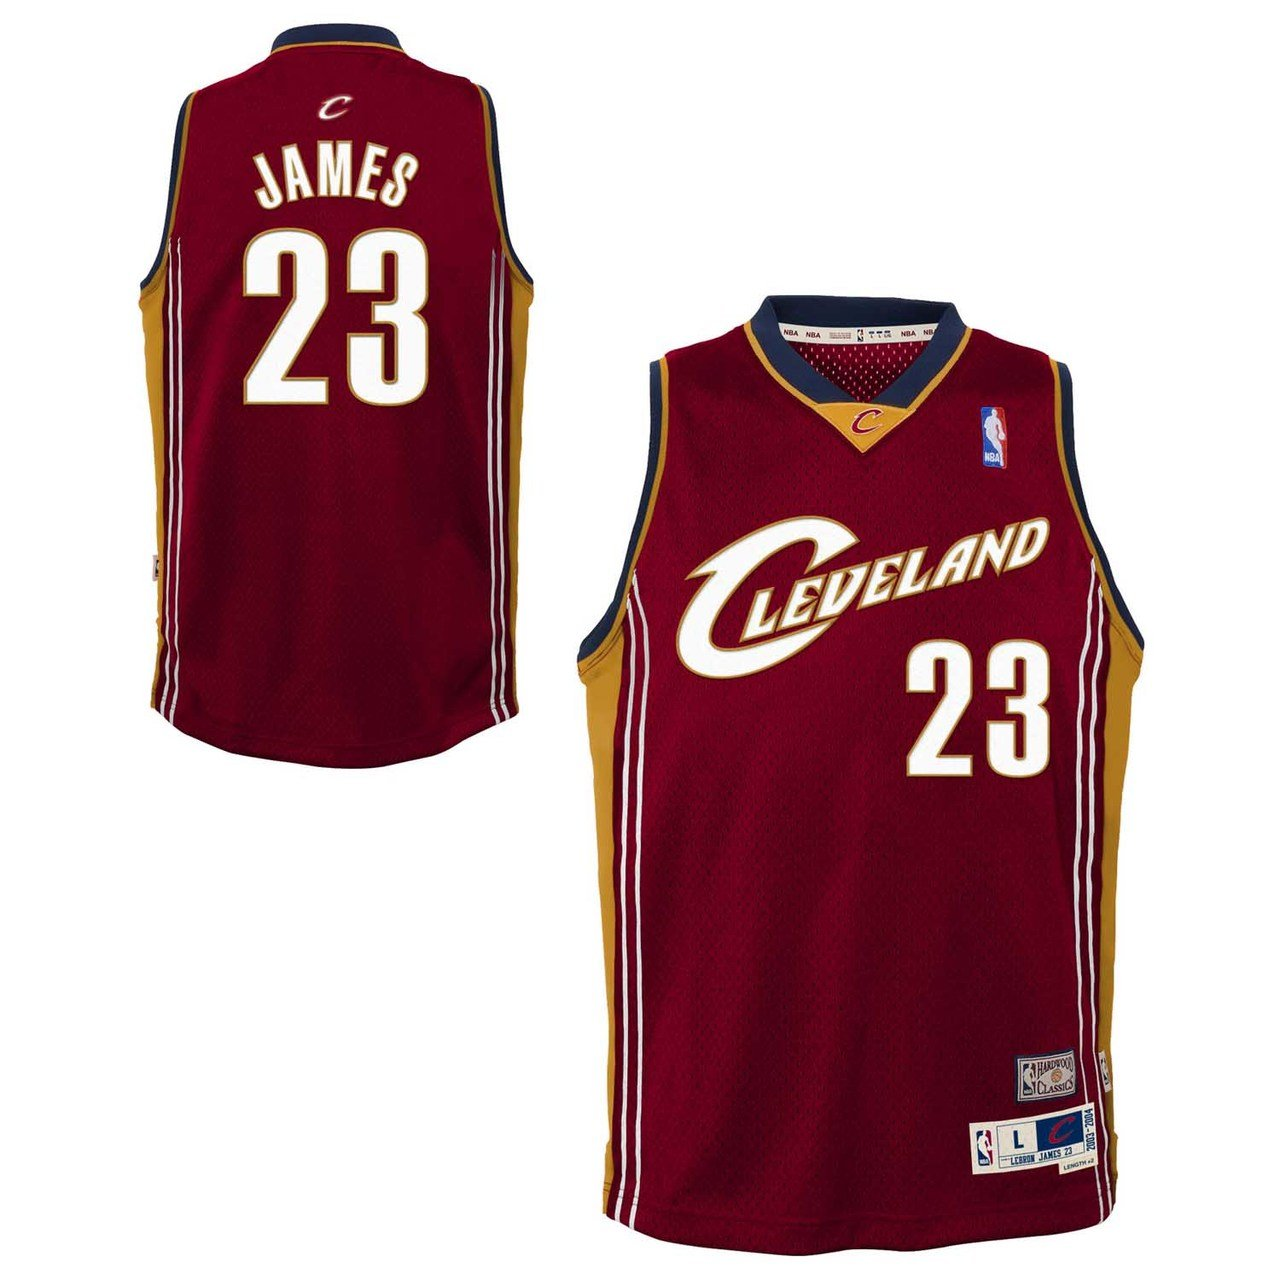 finest selection ed30a f3a98 Genuine Stuff Cleveland Cavaliers Youth Lebron James NBA Soul Swingman  Jersey - Maroon #23,